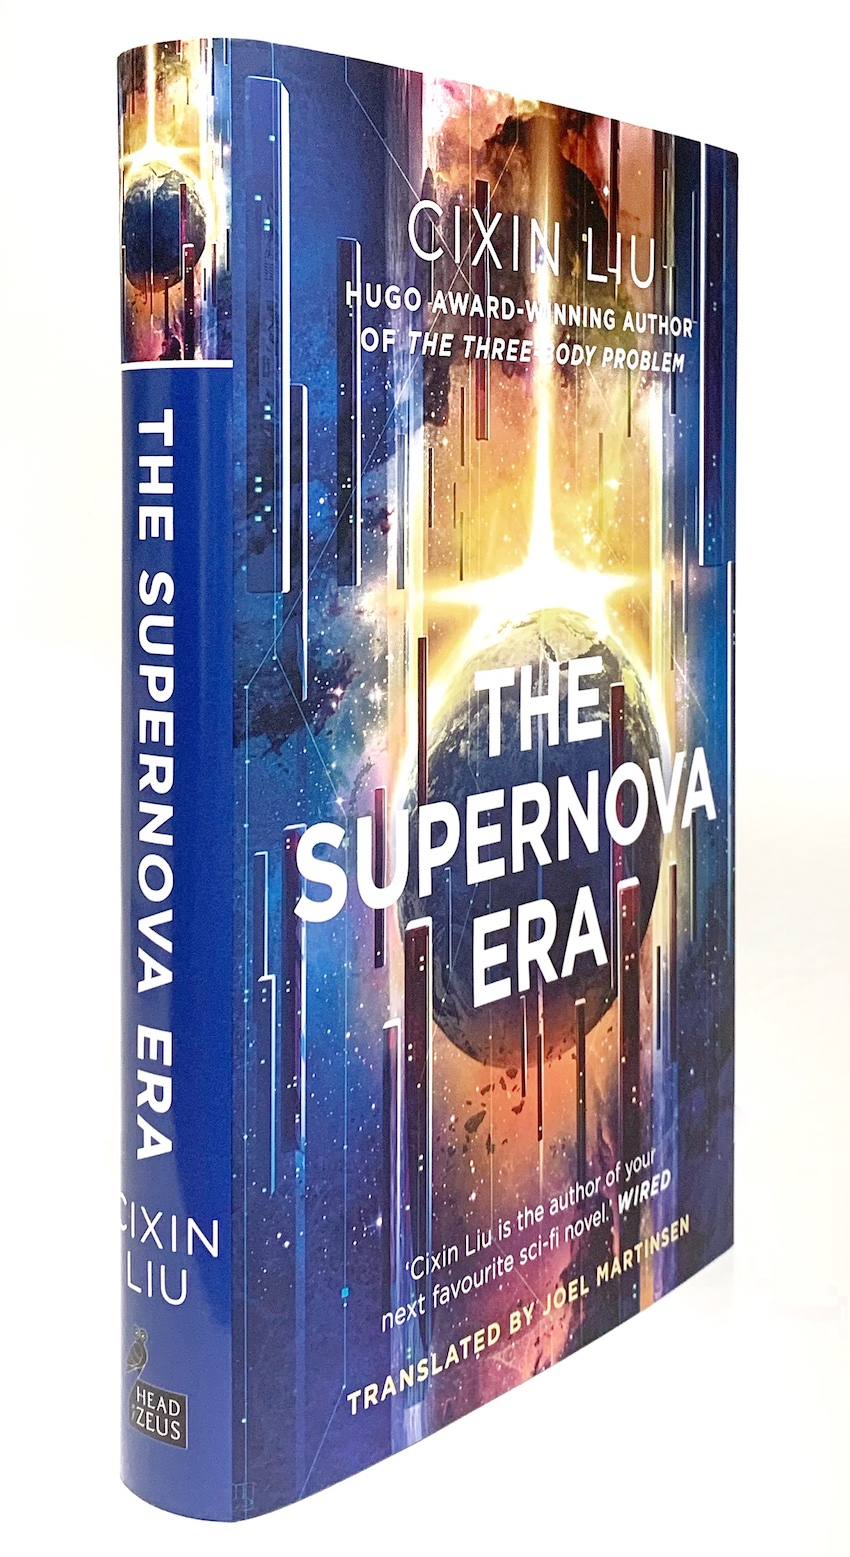 Image for THE SUPERNOVA ERA - Signed First Edition